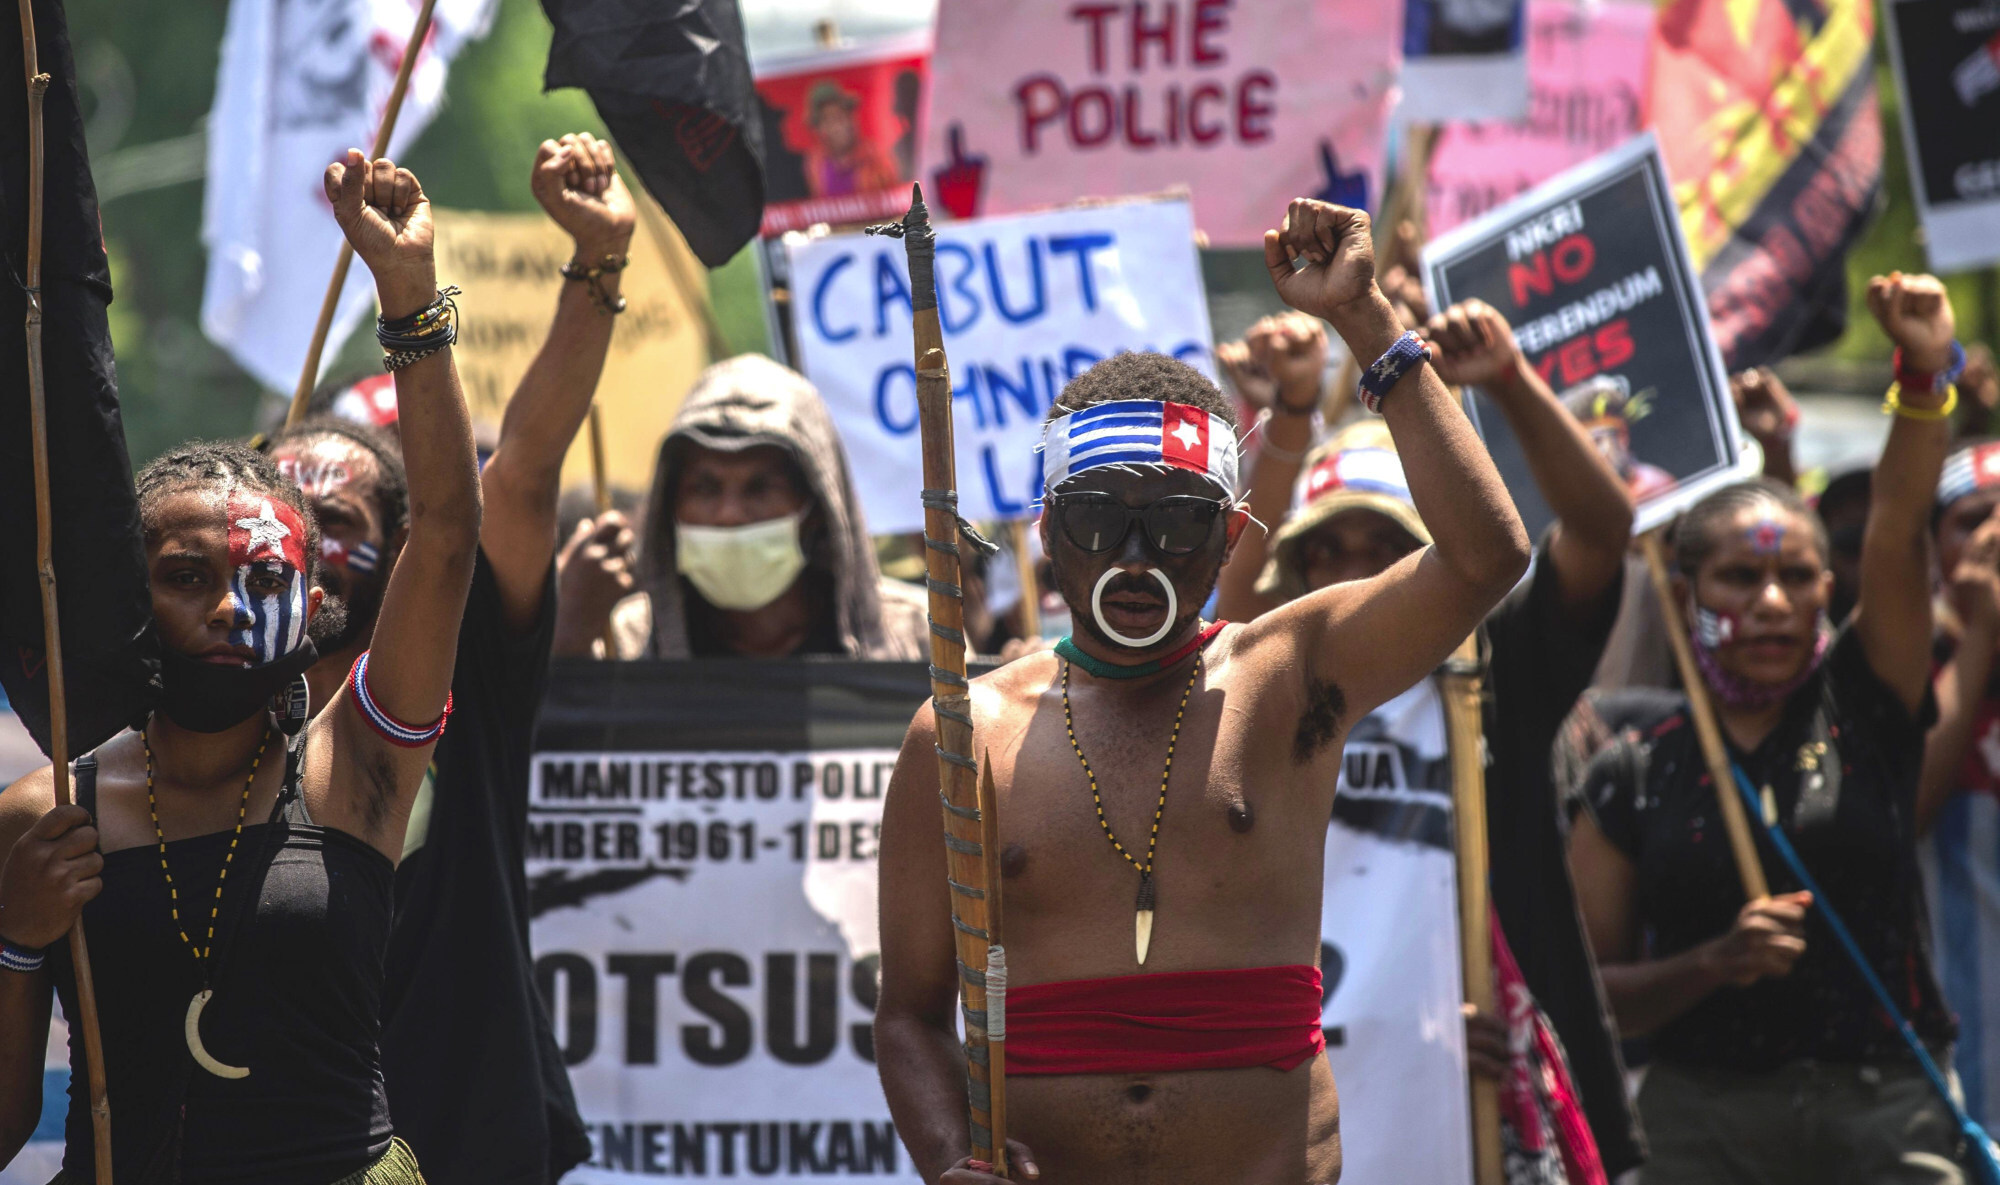 Papuan activists attend a protest in Surabaya in December 2020 to call for independence. Photo: AFP